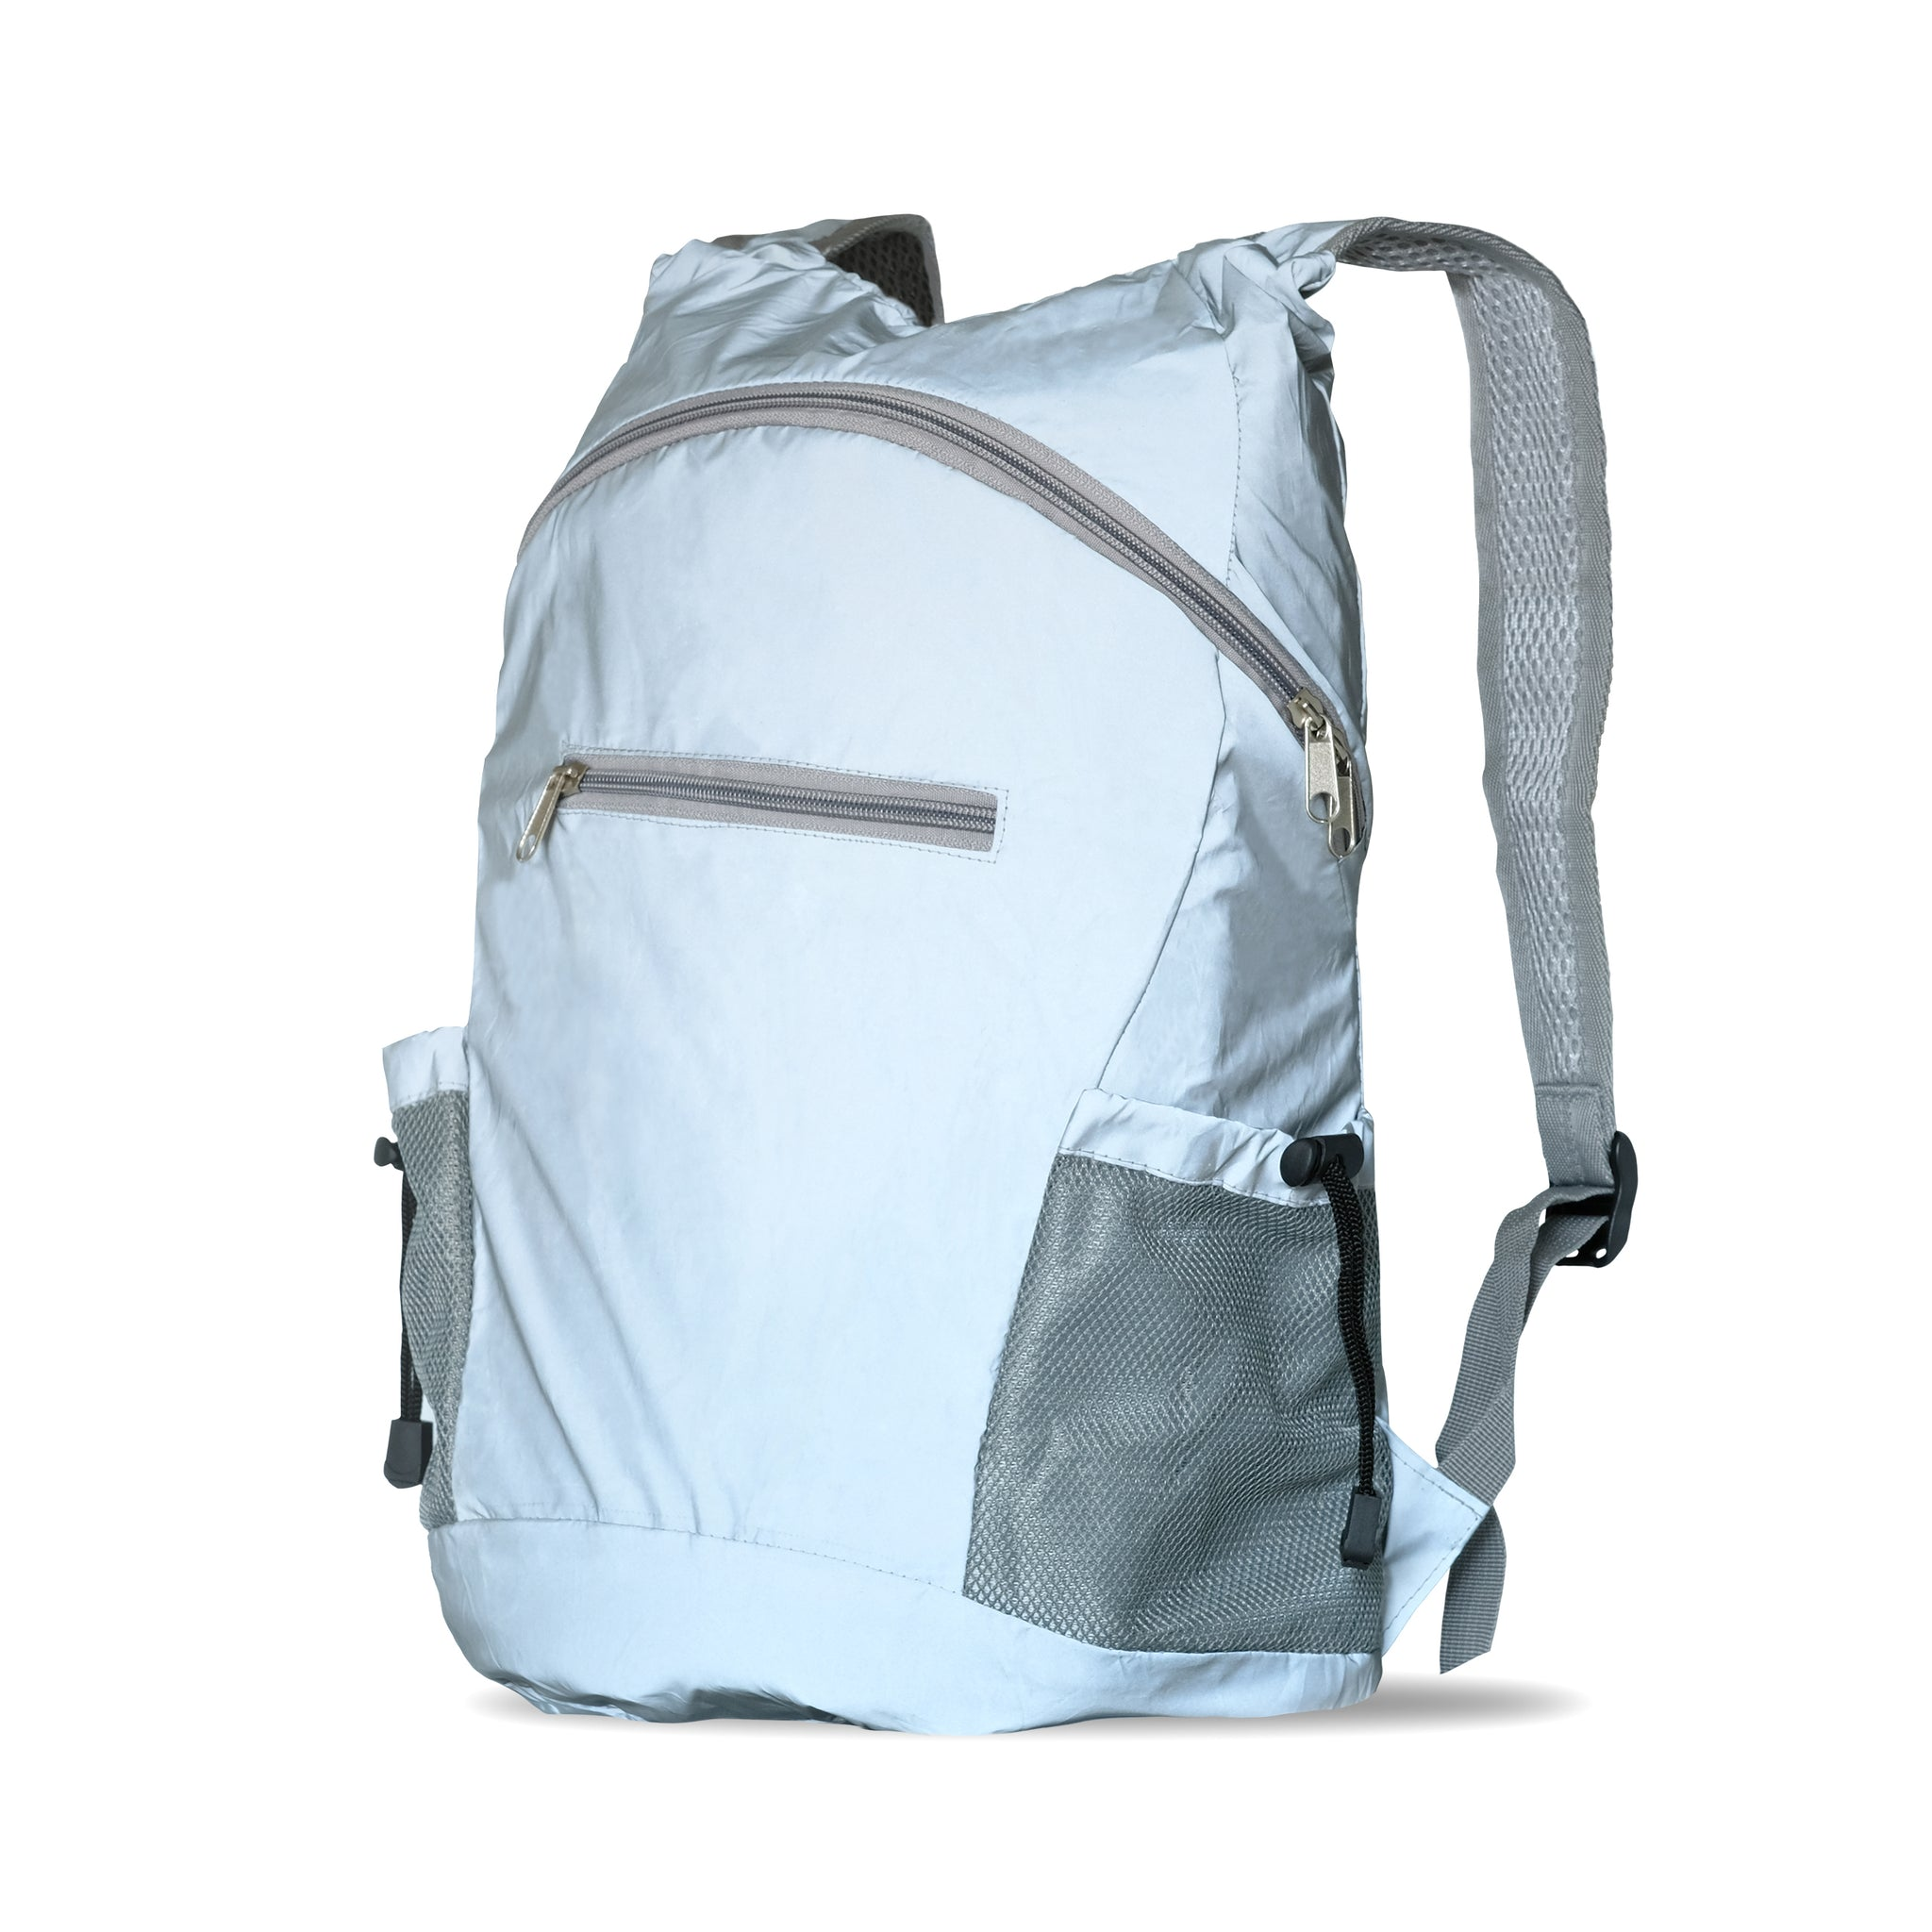 Reflective Cycling Backpack Bag High Visibility Silver